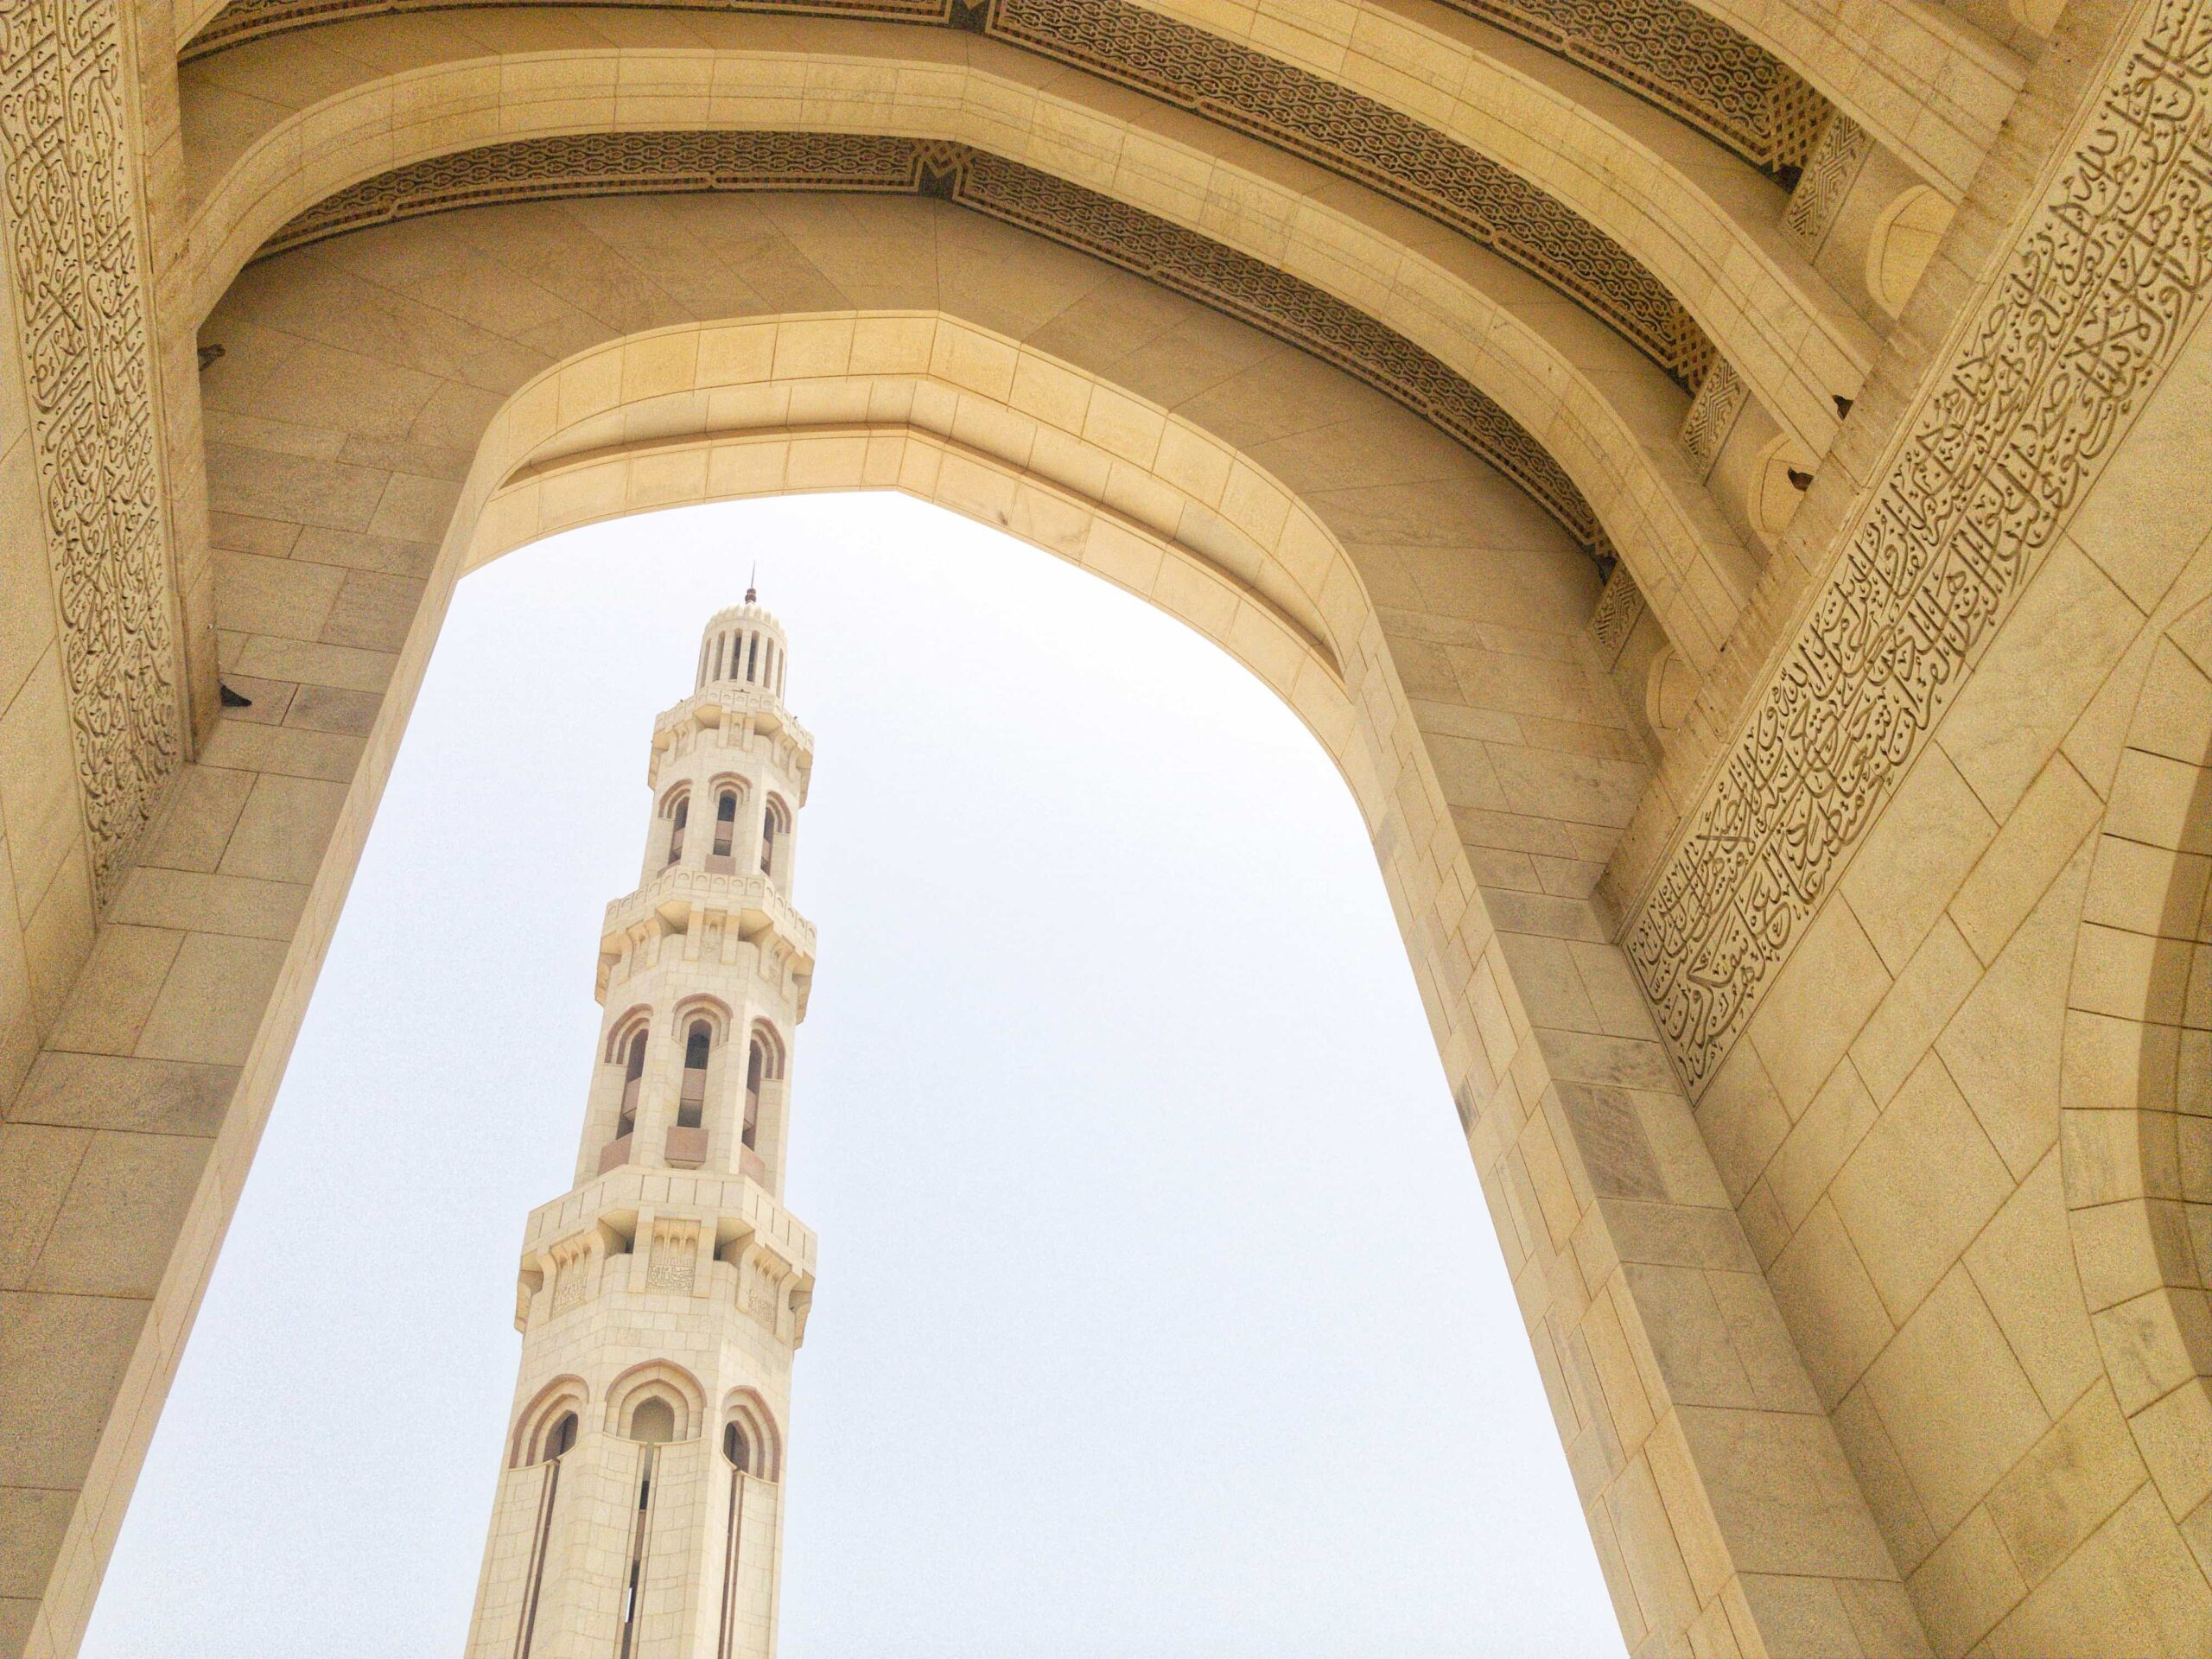 An Interior view of the Sultan Qaboos with a minaret seen across